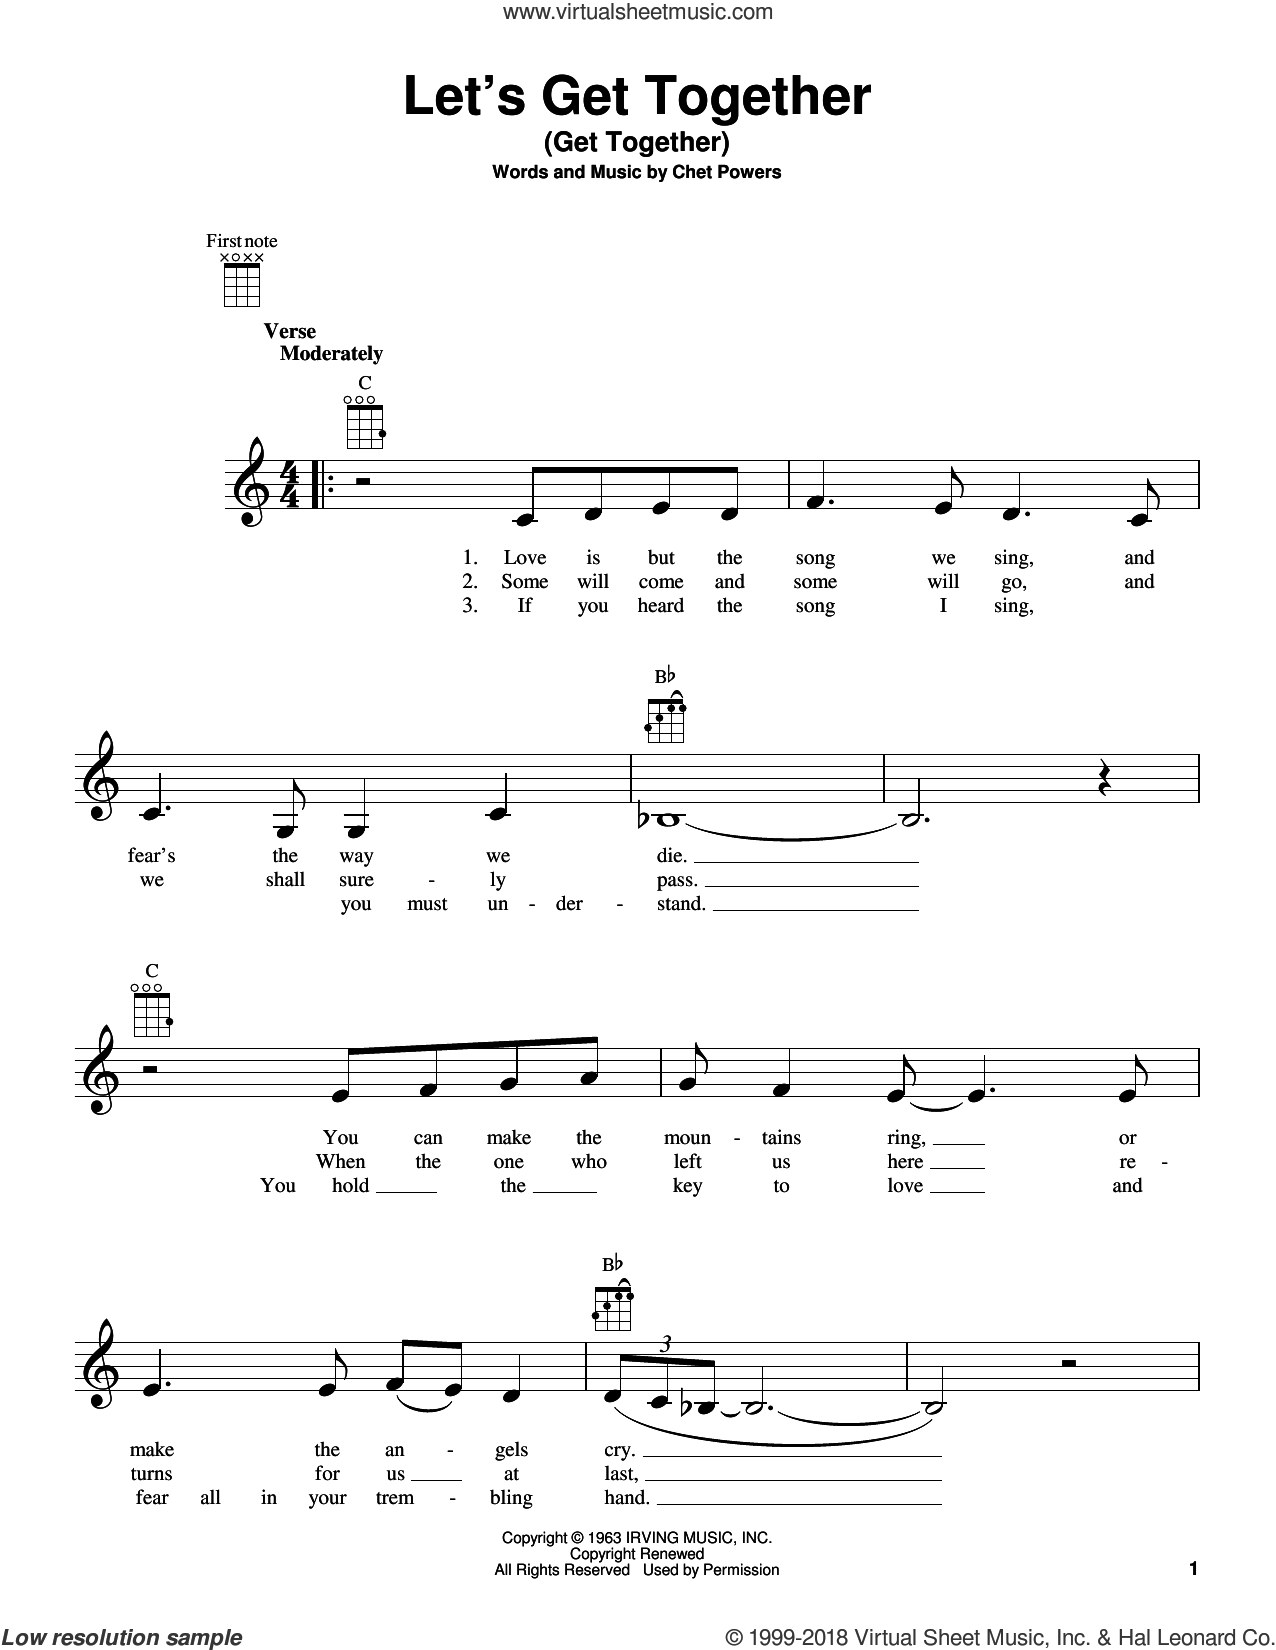 Let's Get Together (Get Together) sheet music for ukulele by Chet Powers, Big Mountain, Indigo Girls and The Youngbloods, intermediate skill level